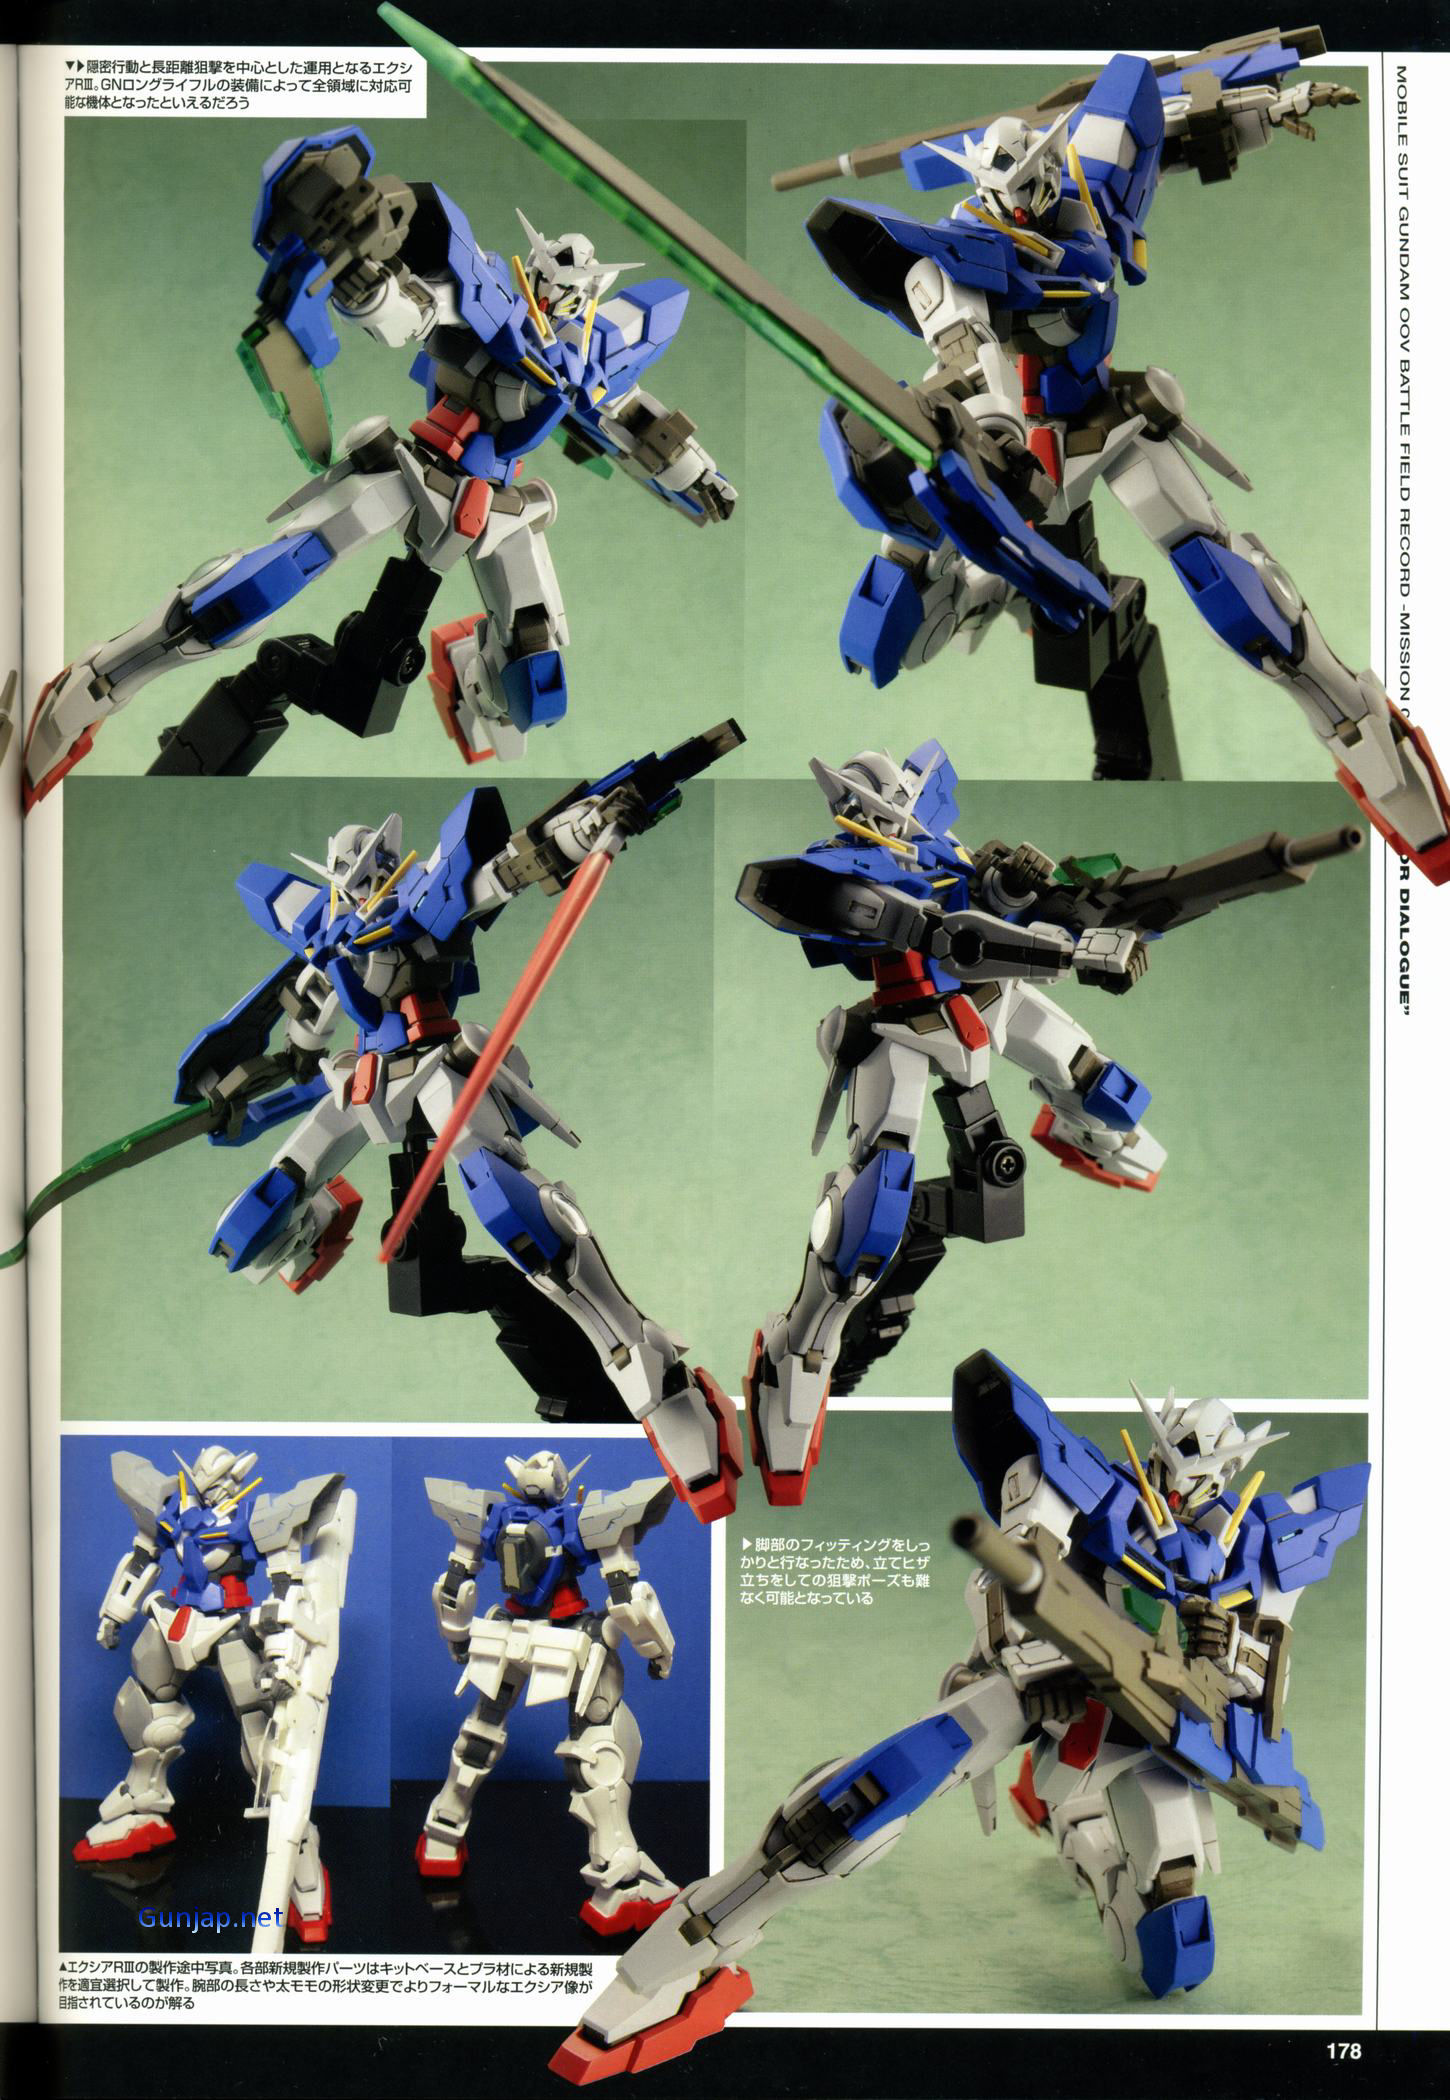 Gundam Weapons 00 chapter IV: Sera & Gundam Exia Repair ...